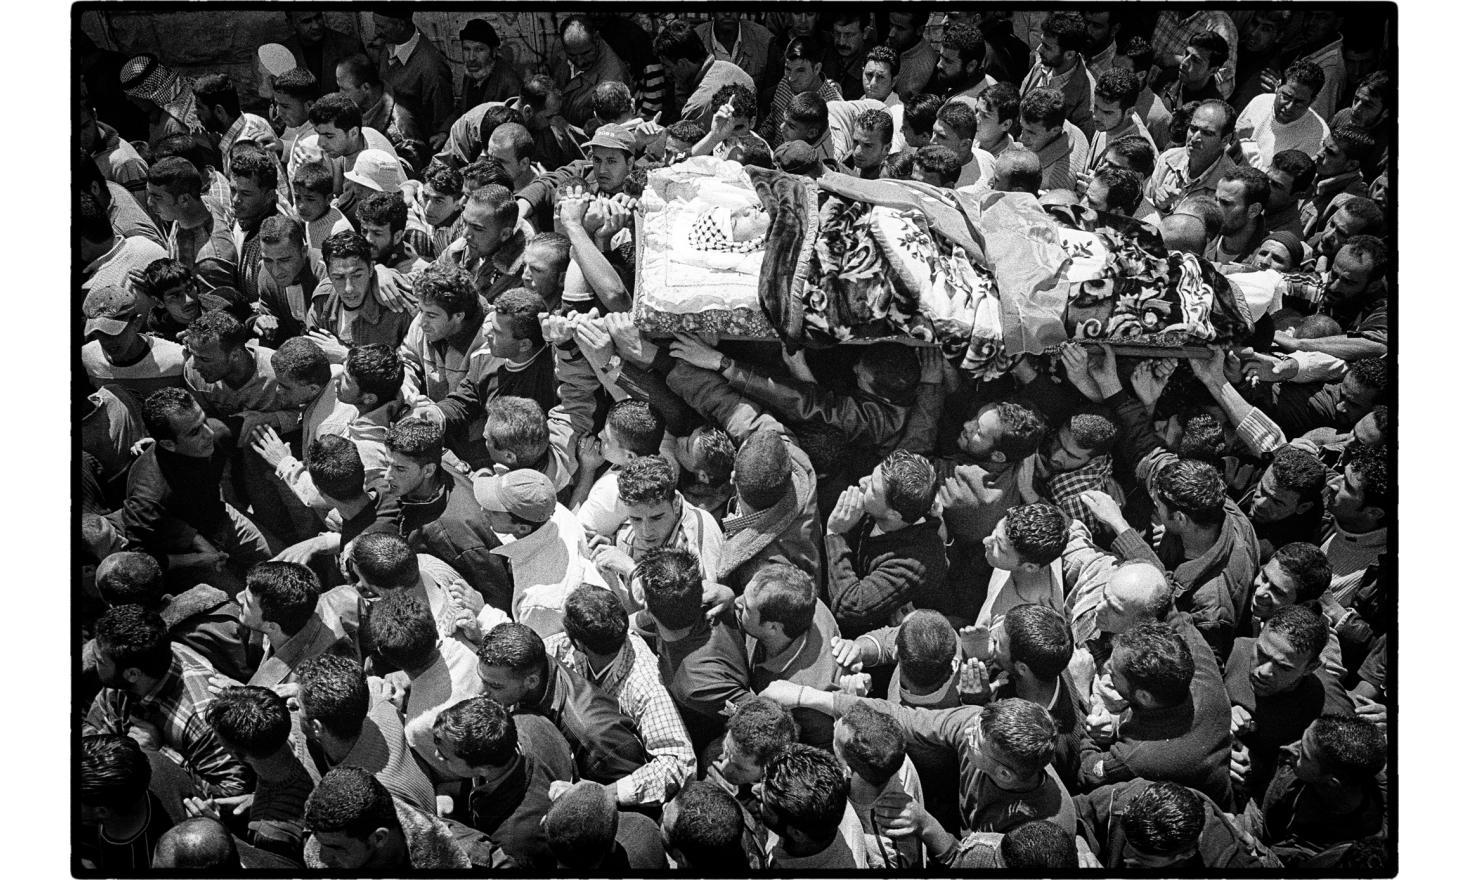 Funerals of a young Palestinian killed during a demonstration against the construction of the security barrier. Biddu, West bank. April 2004.